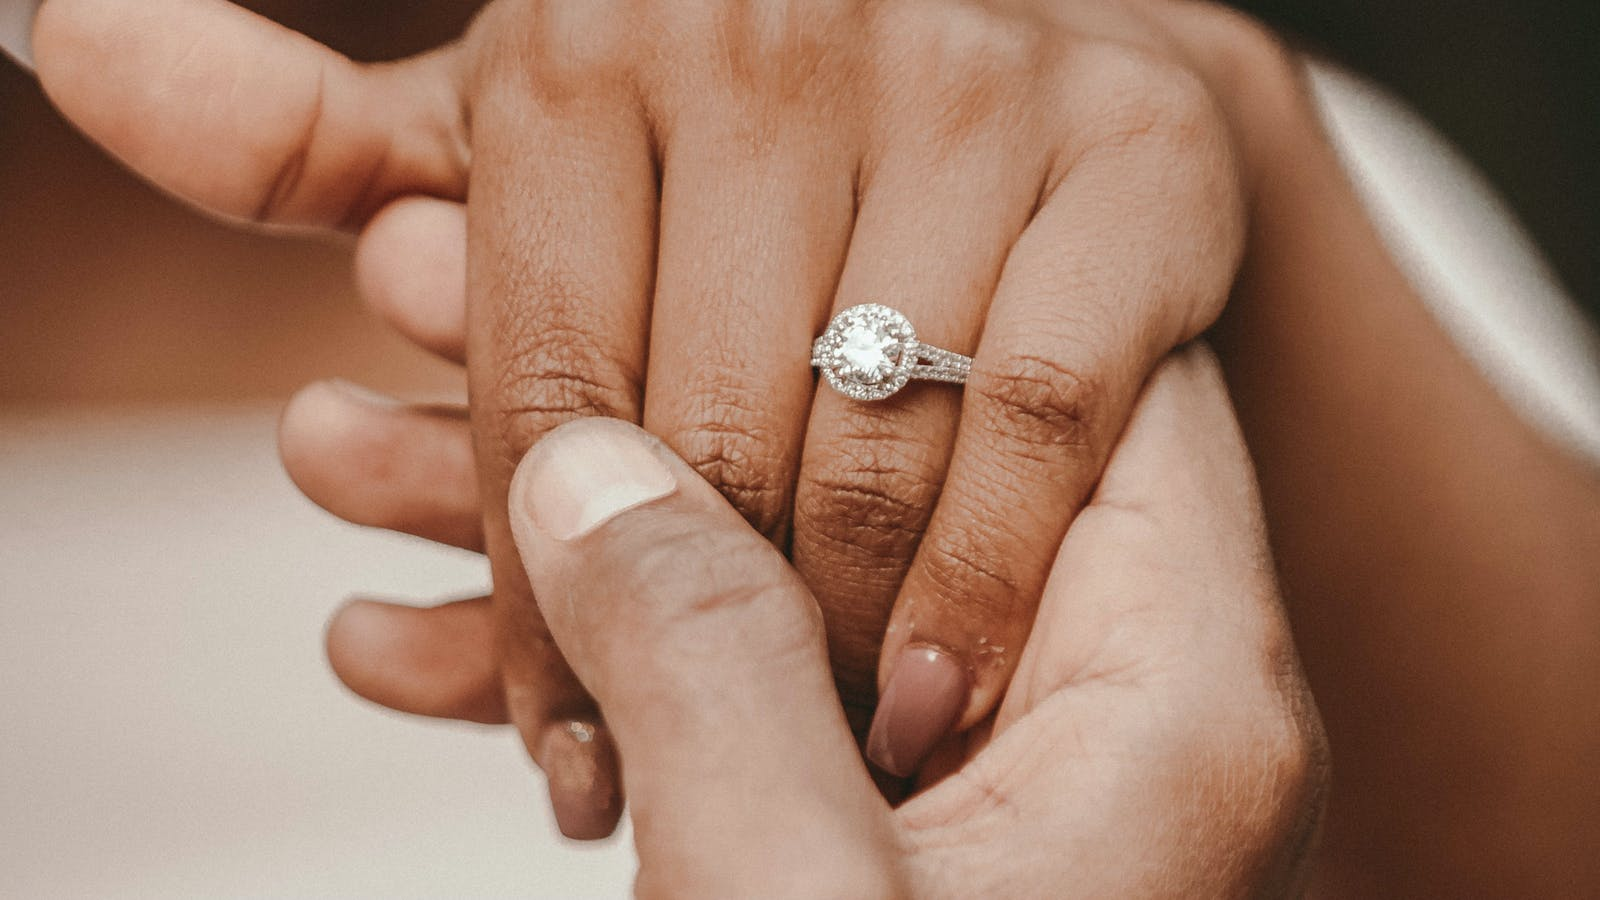 Are Wedding Rings A Waste Of Money Desiring God